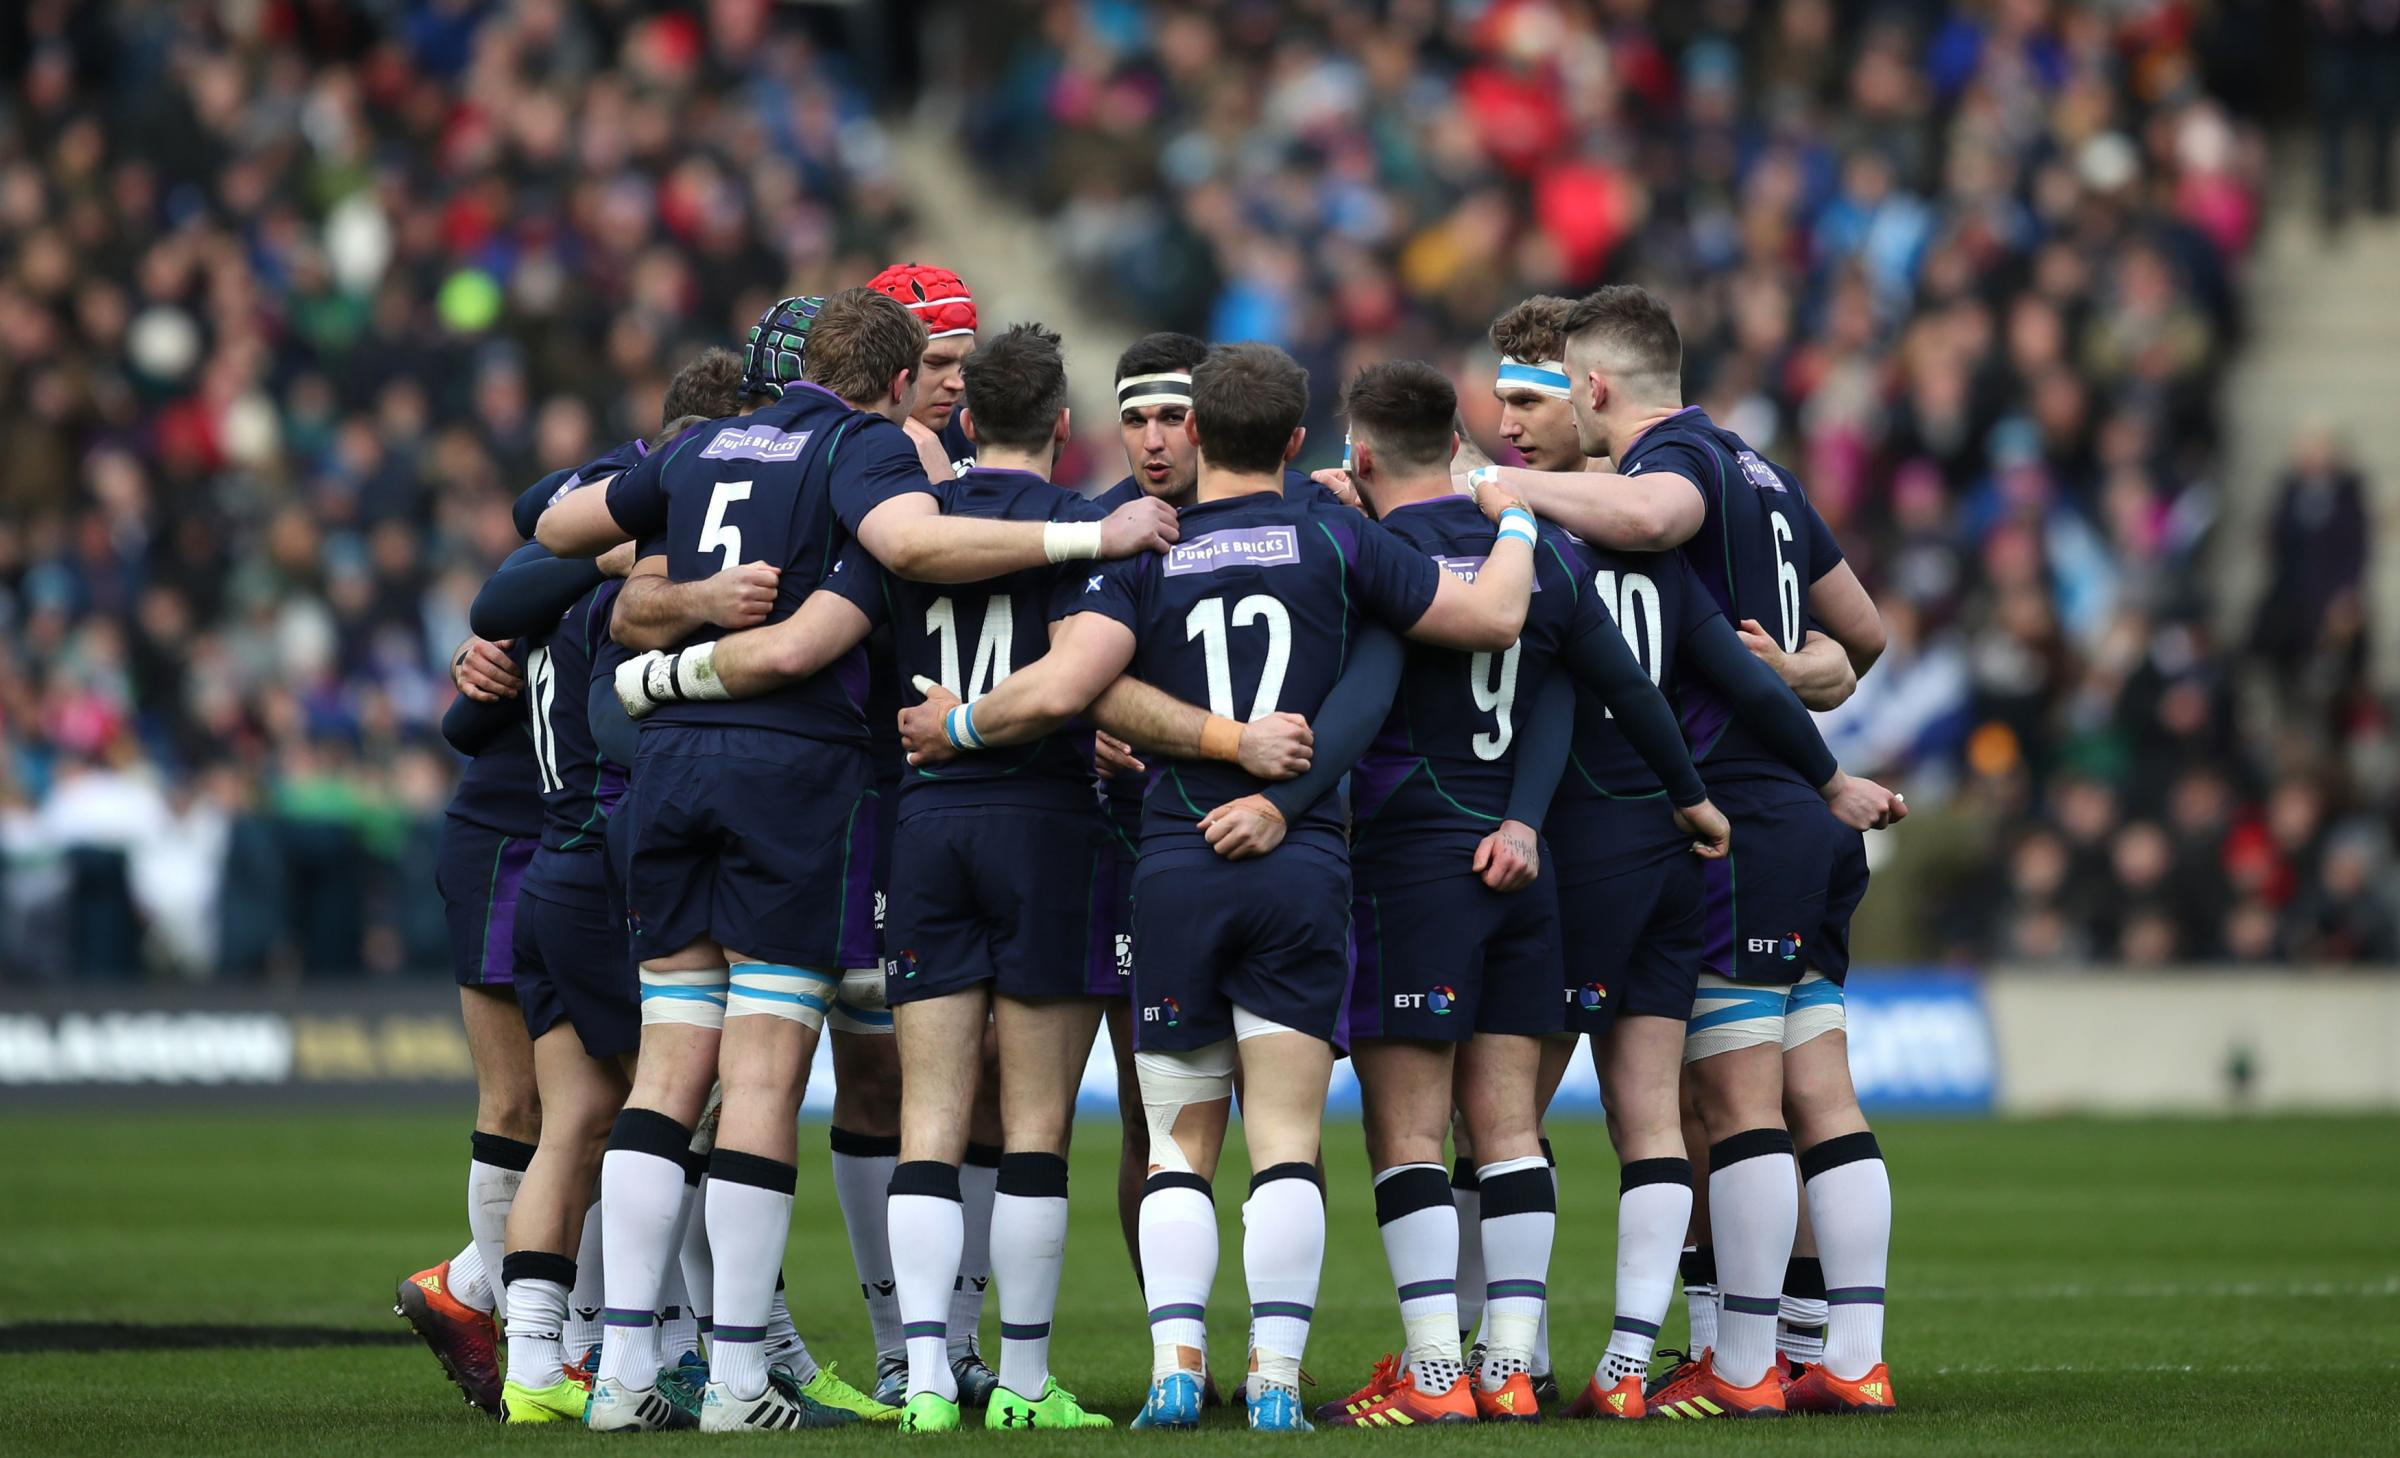 Scotland team huddle prior to the Guinness Six Nations match at BT Murrayfield. Photo: Jane Barlow/PA Wire.